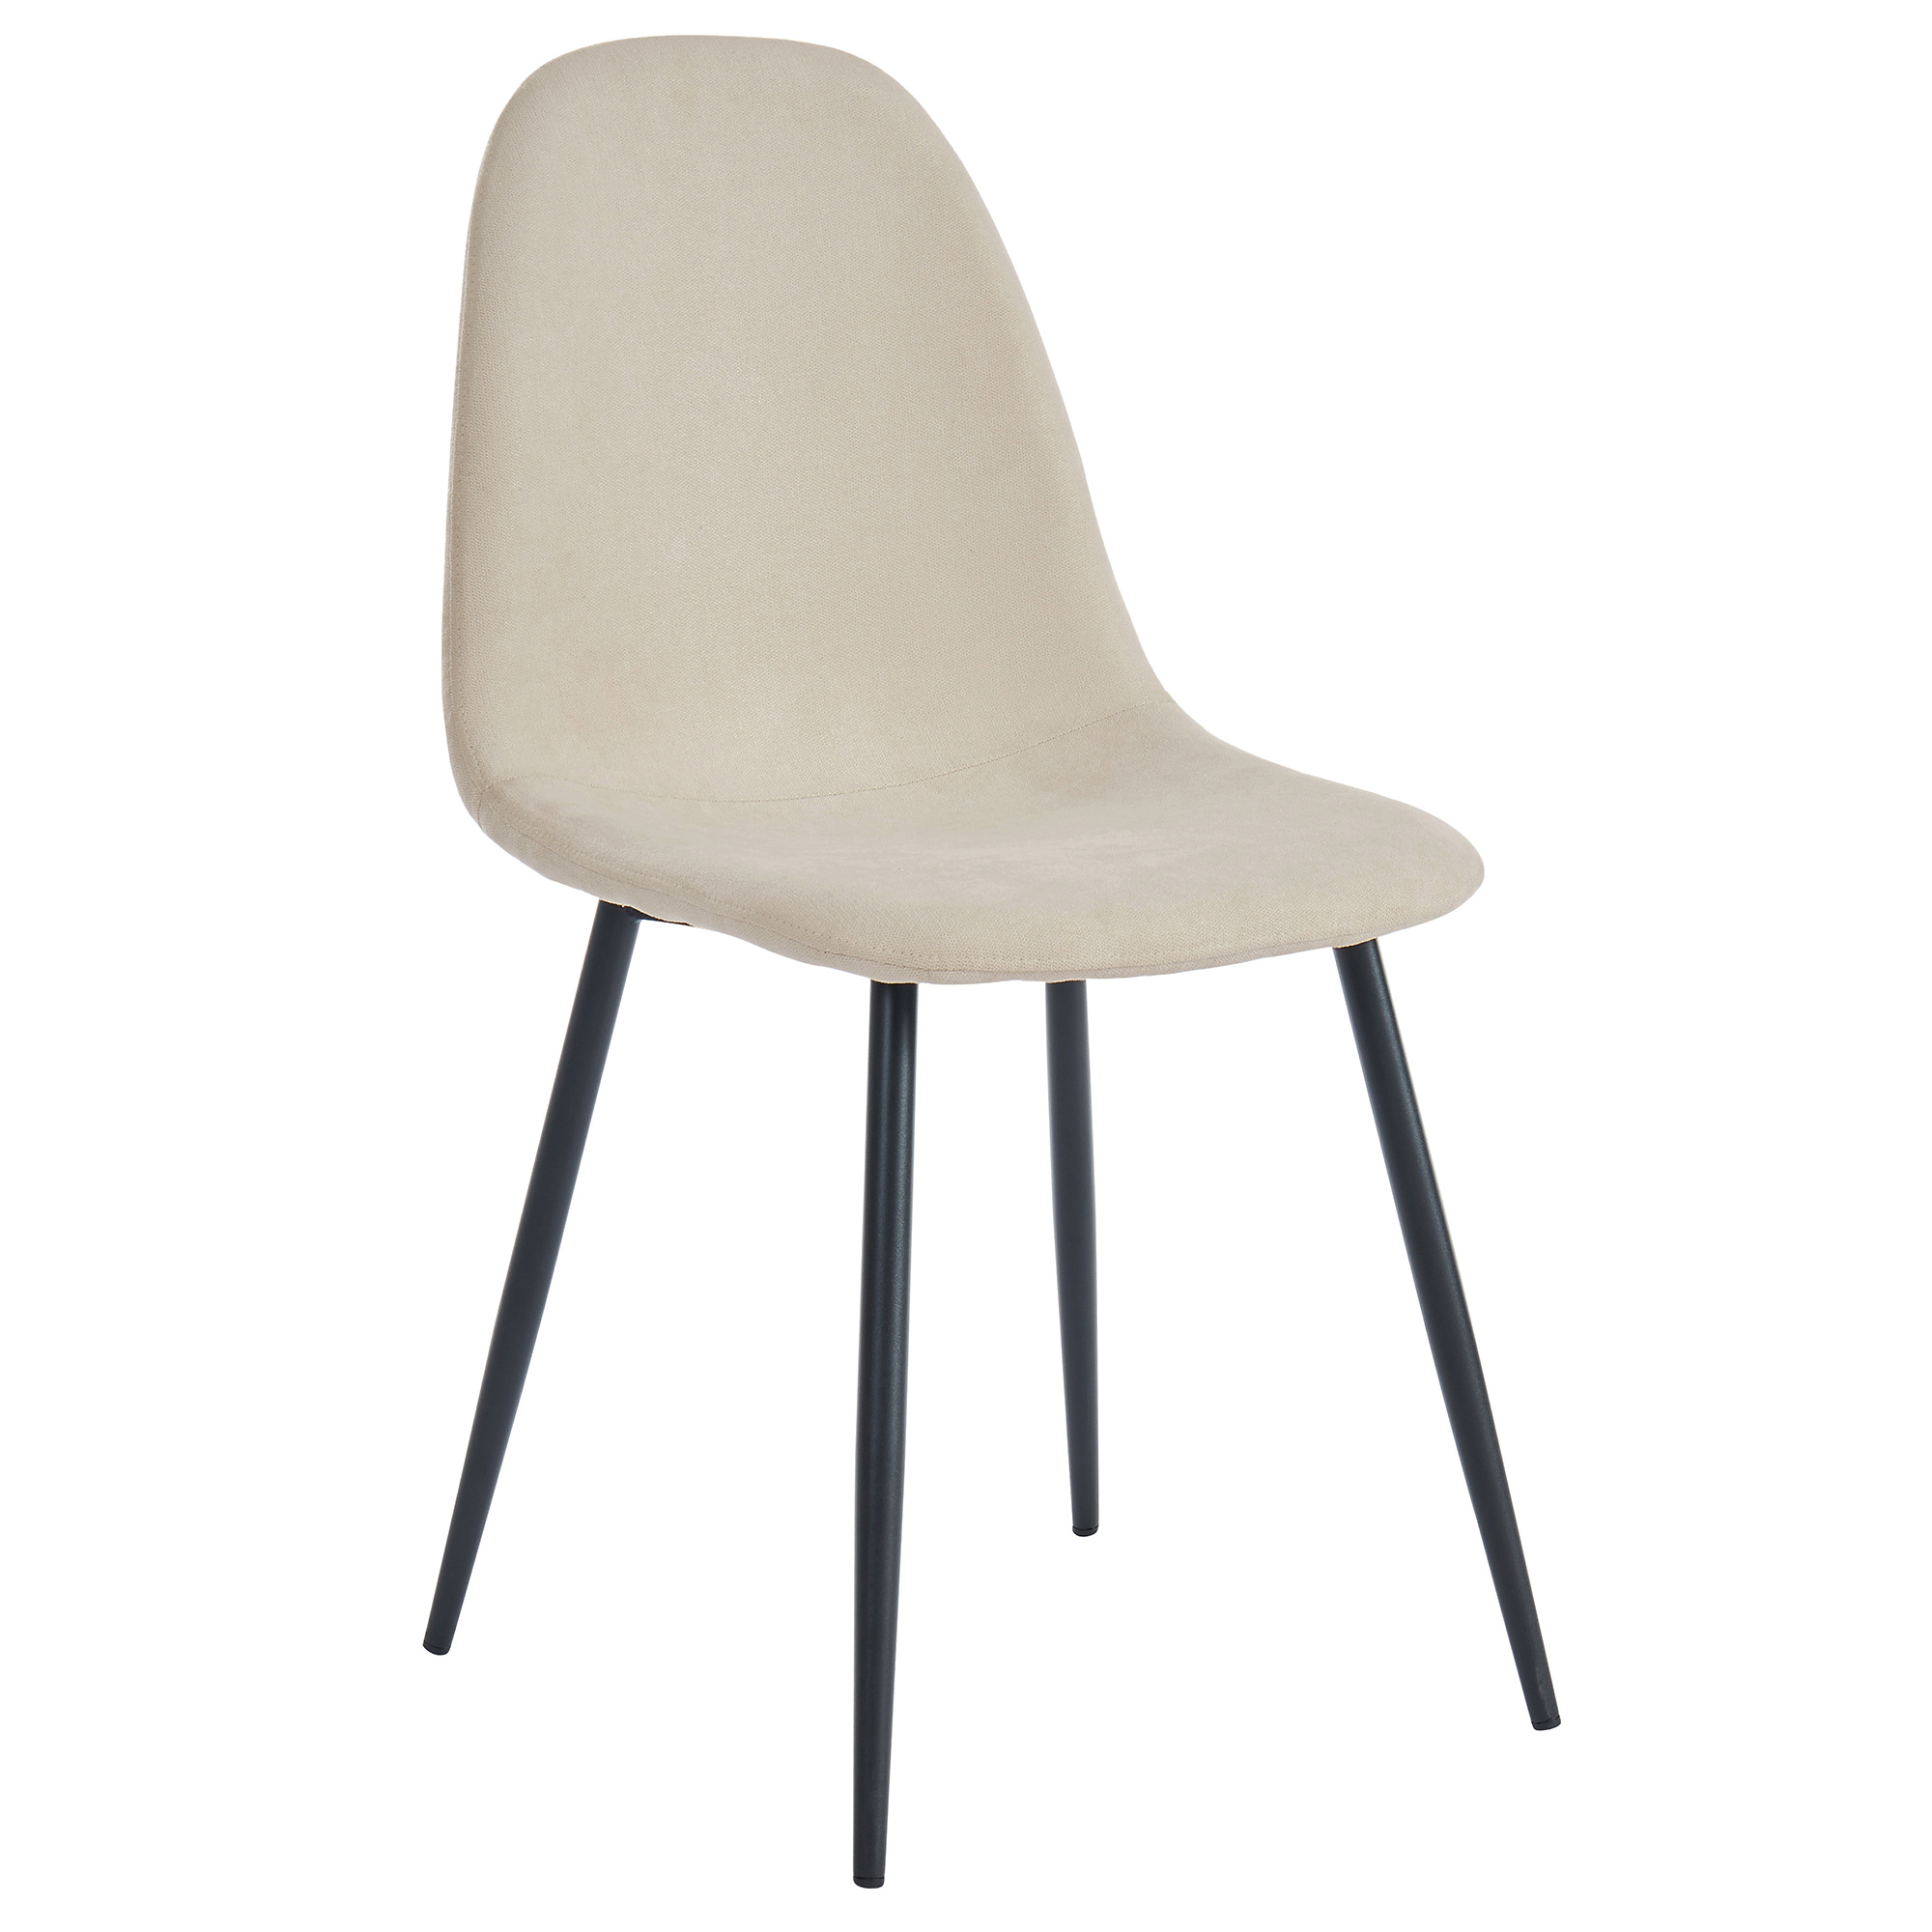 Set of 4 Mid-Century Fabric & Metal Side Chair in Beige